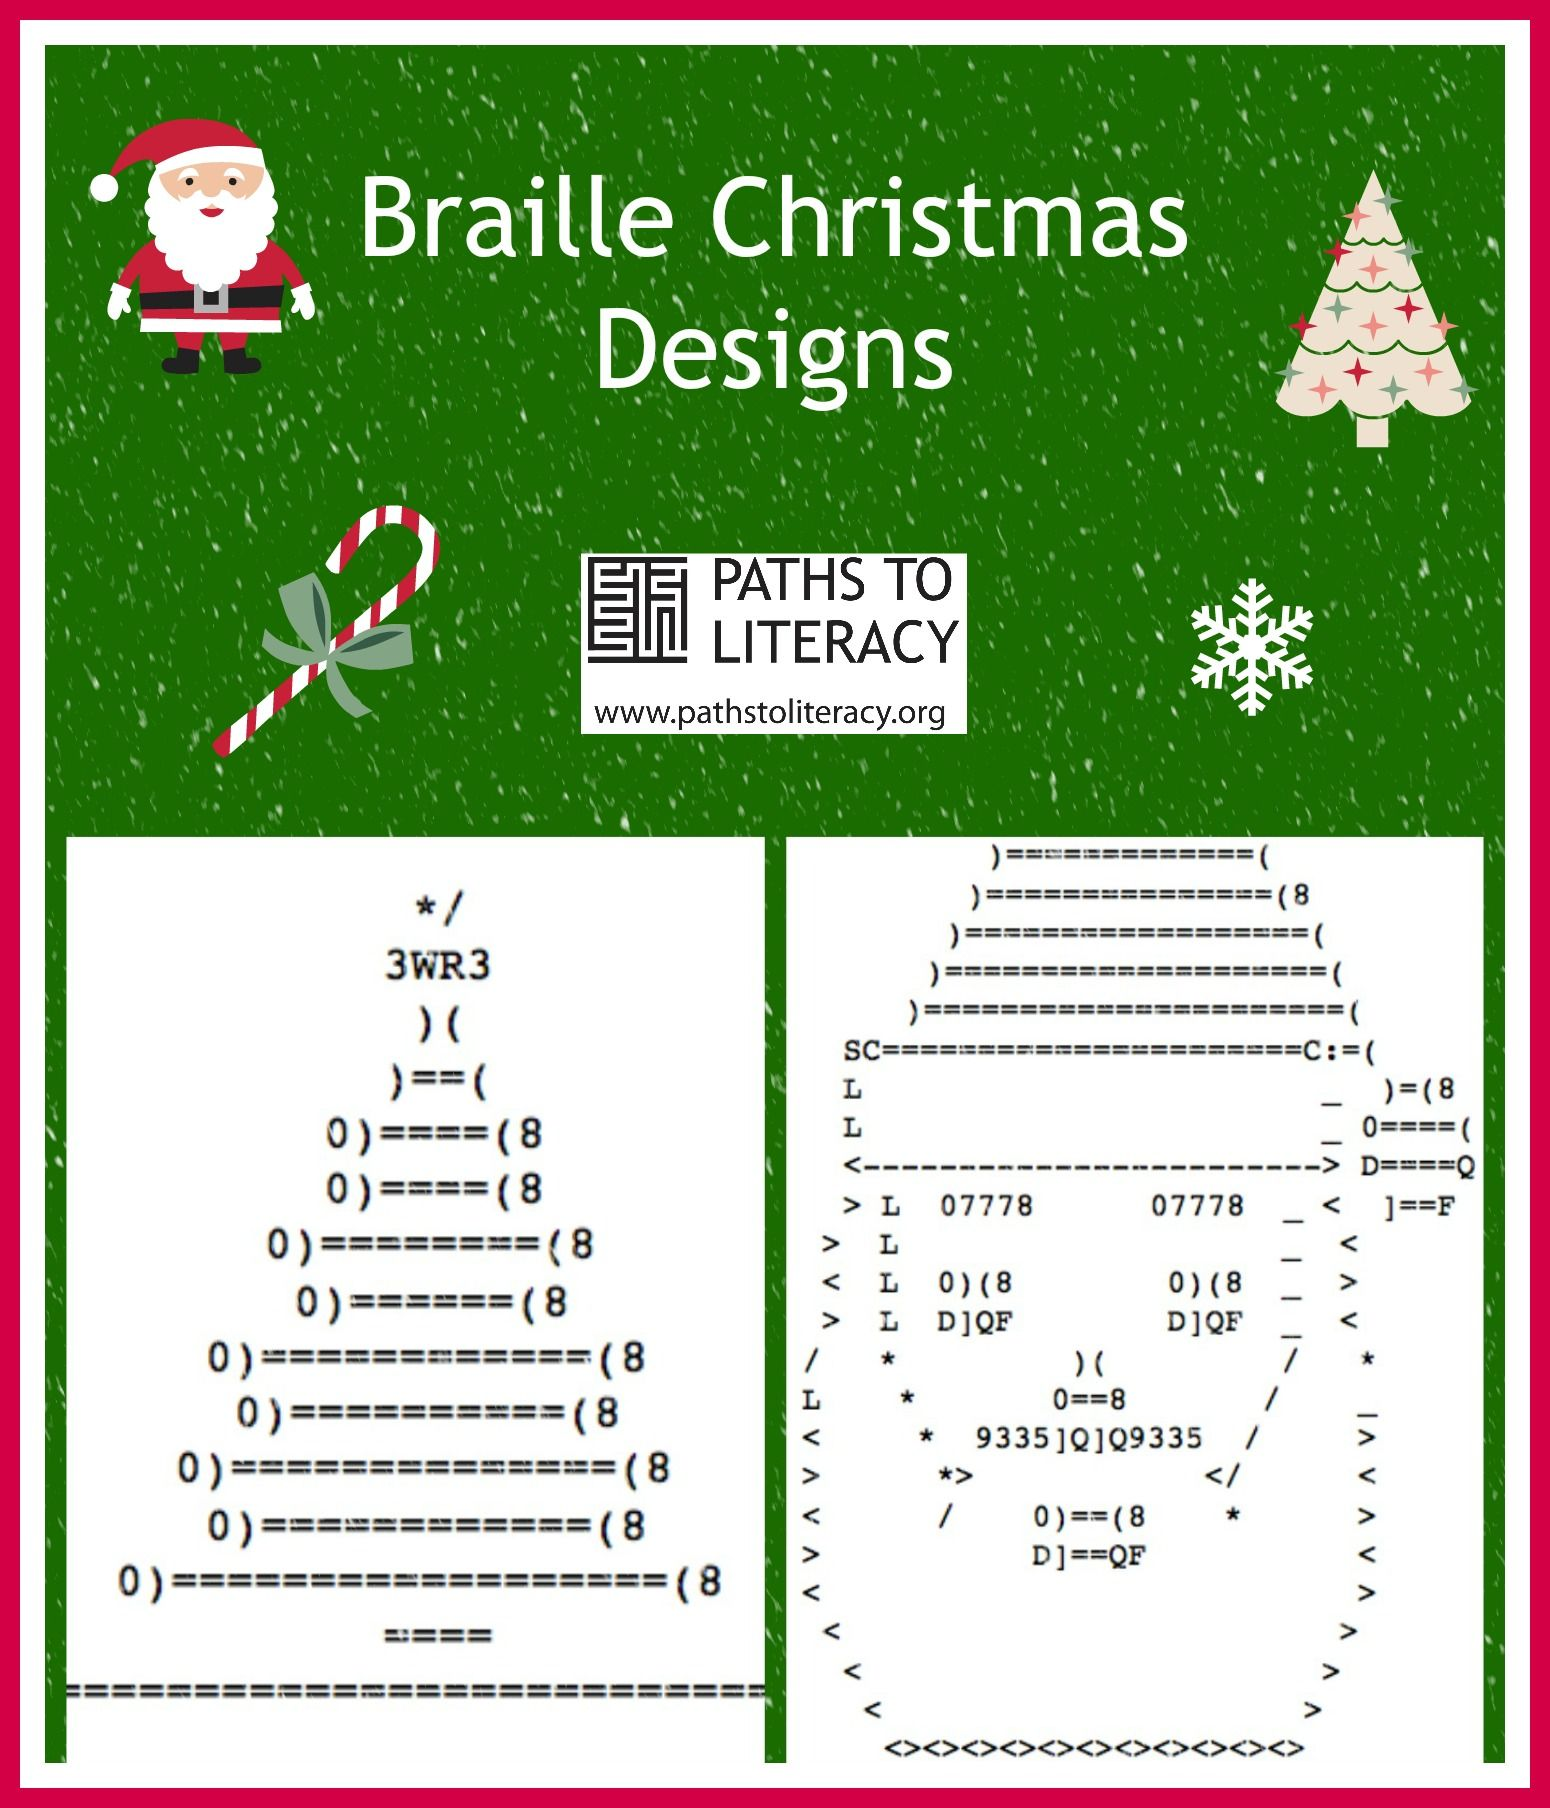 Braille Designs For Christmas